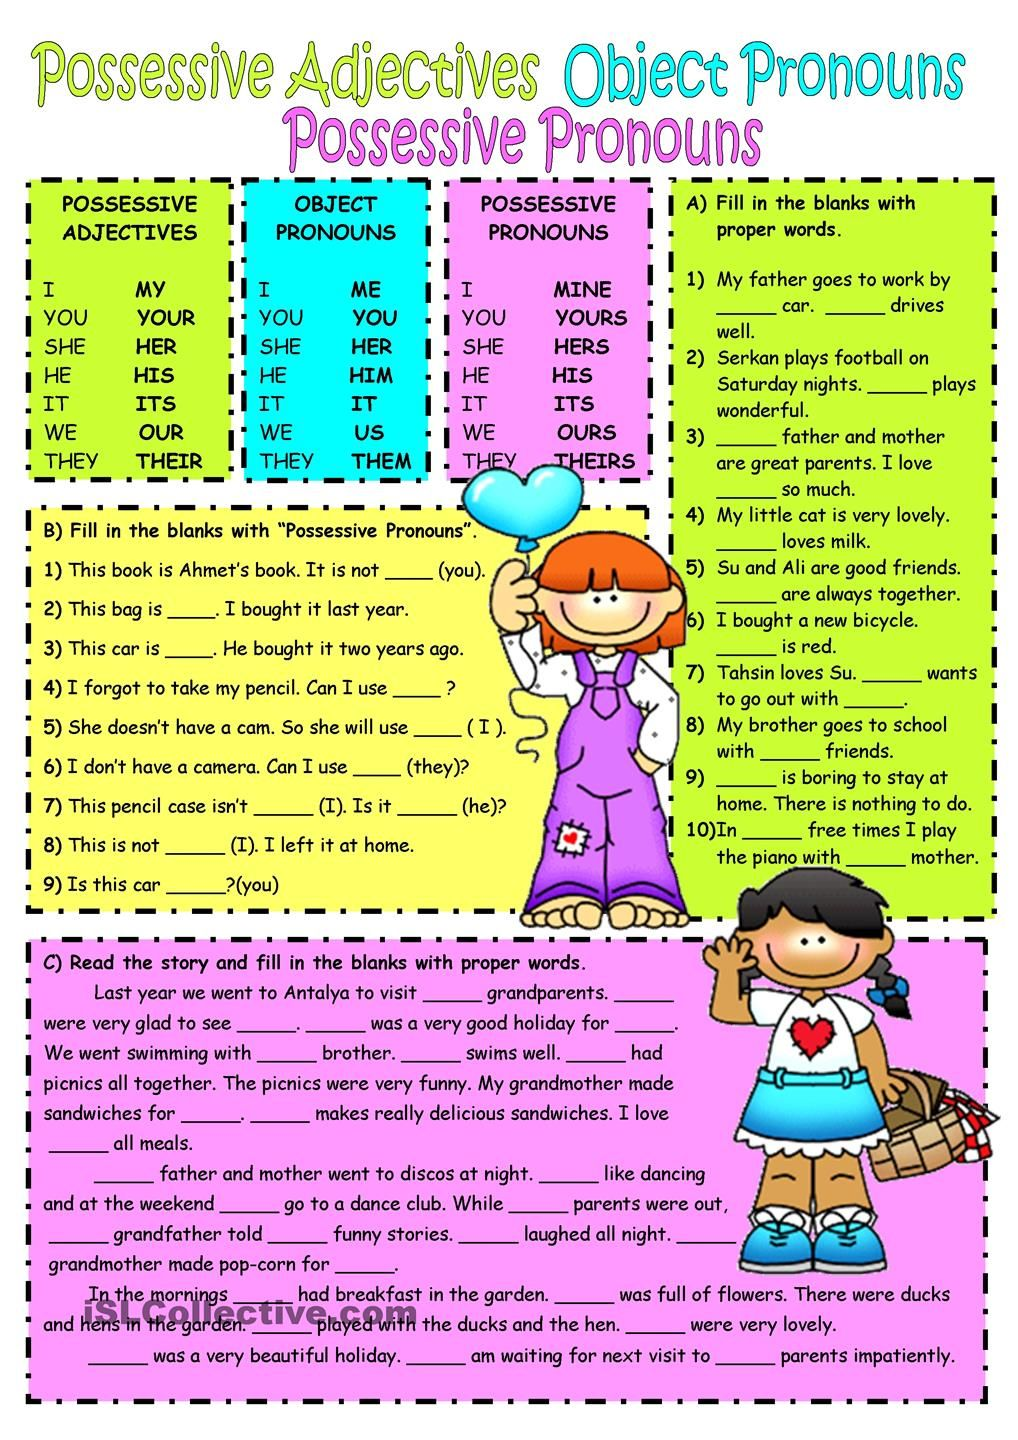 worksheet Pronoun Worksheets High School subjectobject pronouns possessive adjectives worksheet free esl printable worksheets made by teachers